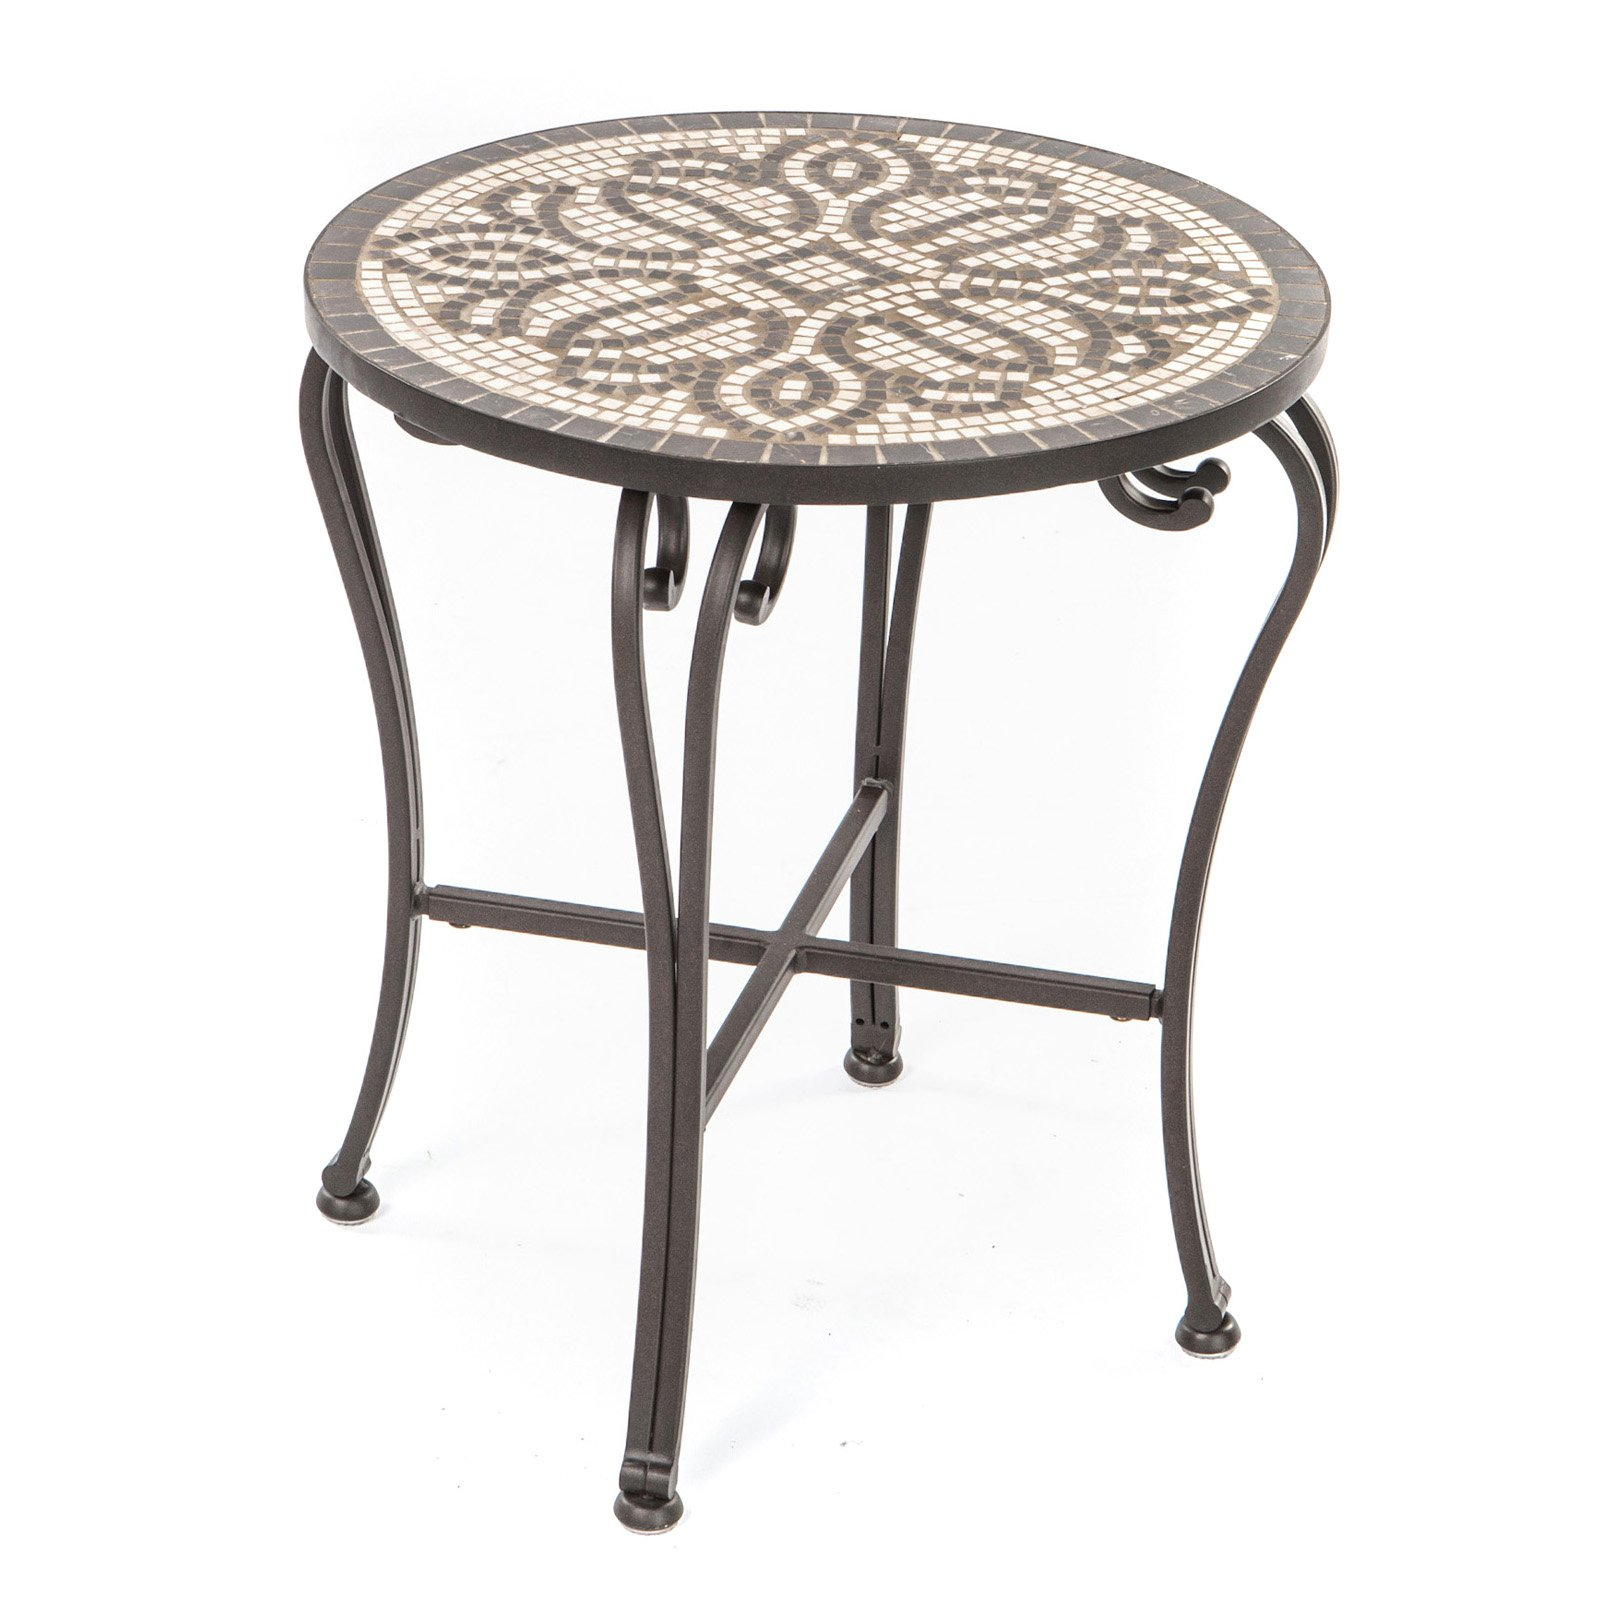 patio accent table darcylea design large tables outdoor west elm adjustable metal floor lamp gallerie dining collapsible coffee ikea changing dresser vintage with drawers slim